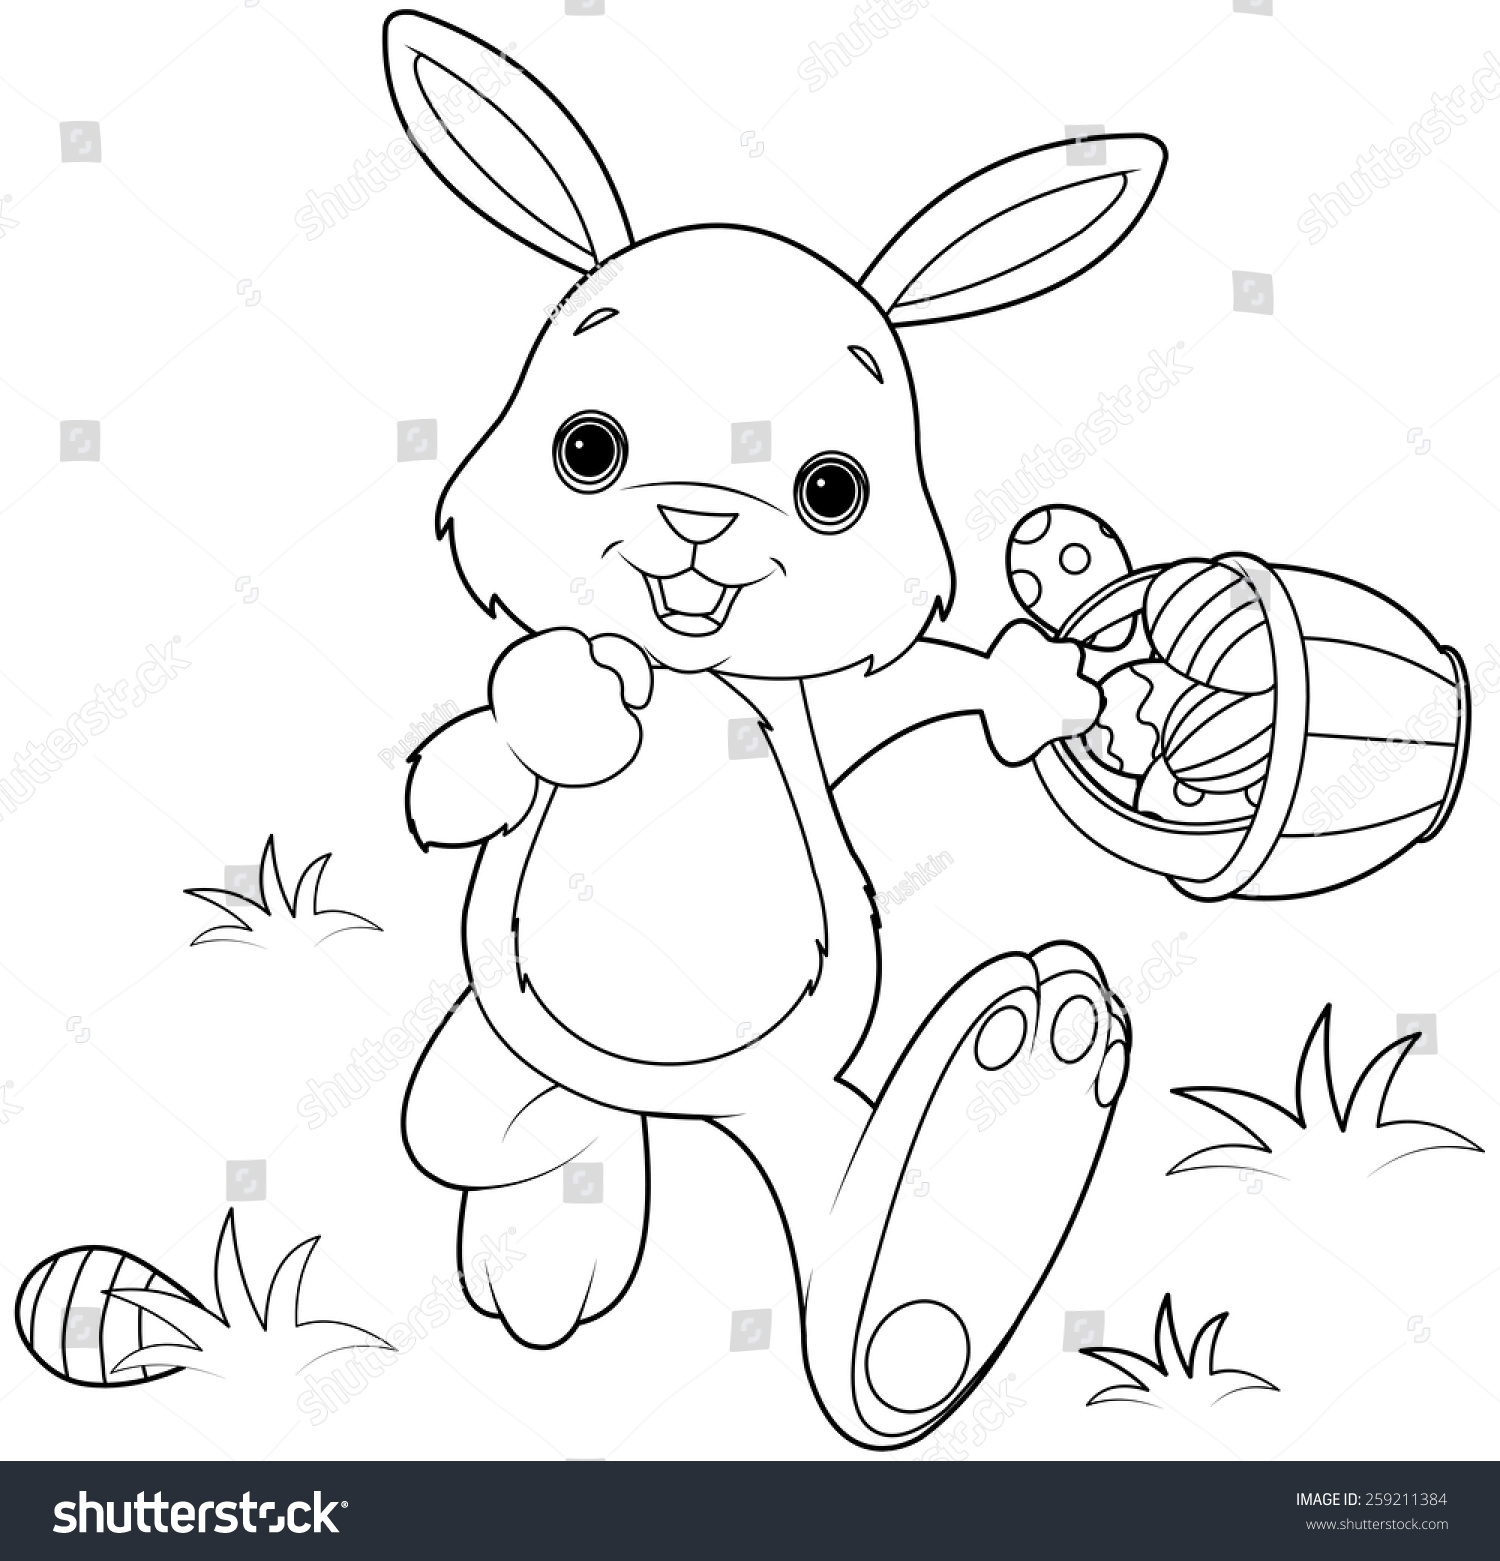 Coloring Page Easter Bunny Hiding Eggs Stock Illustration 259211384 ...